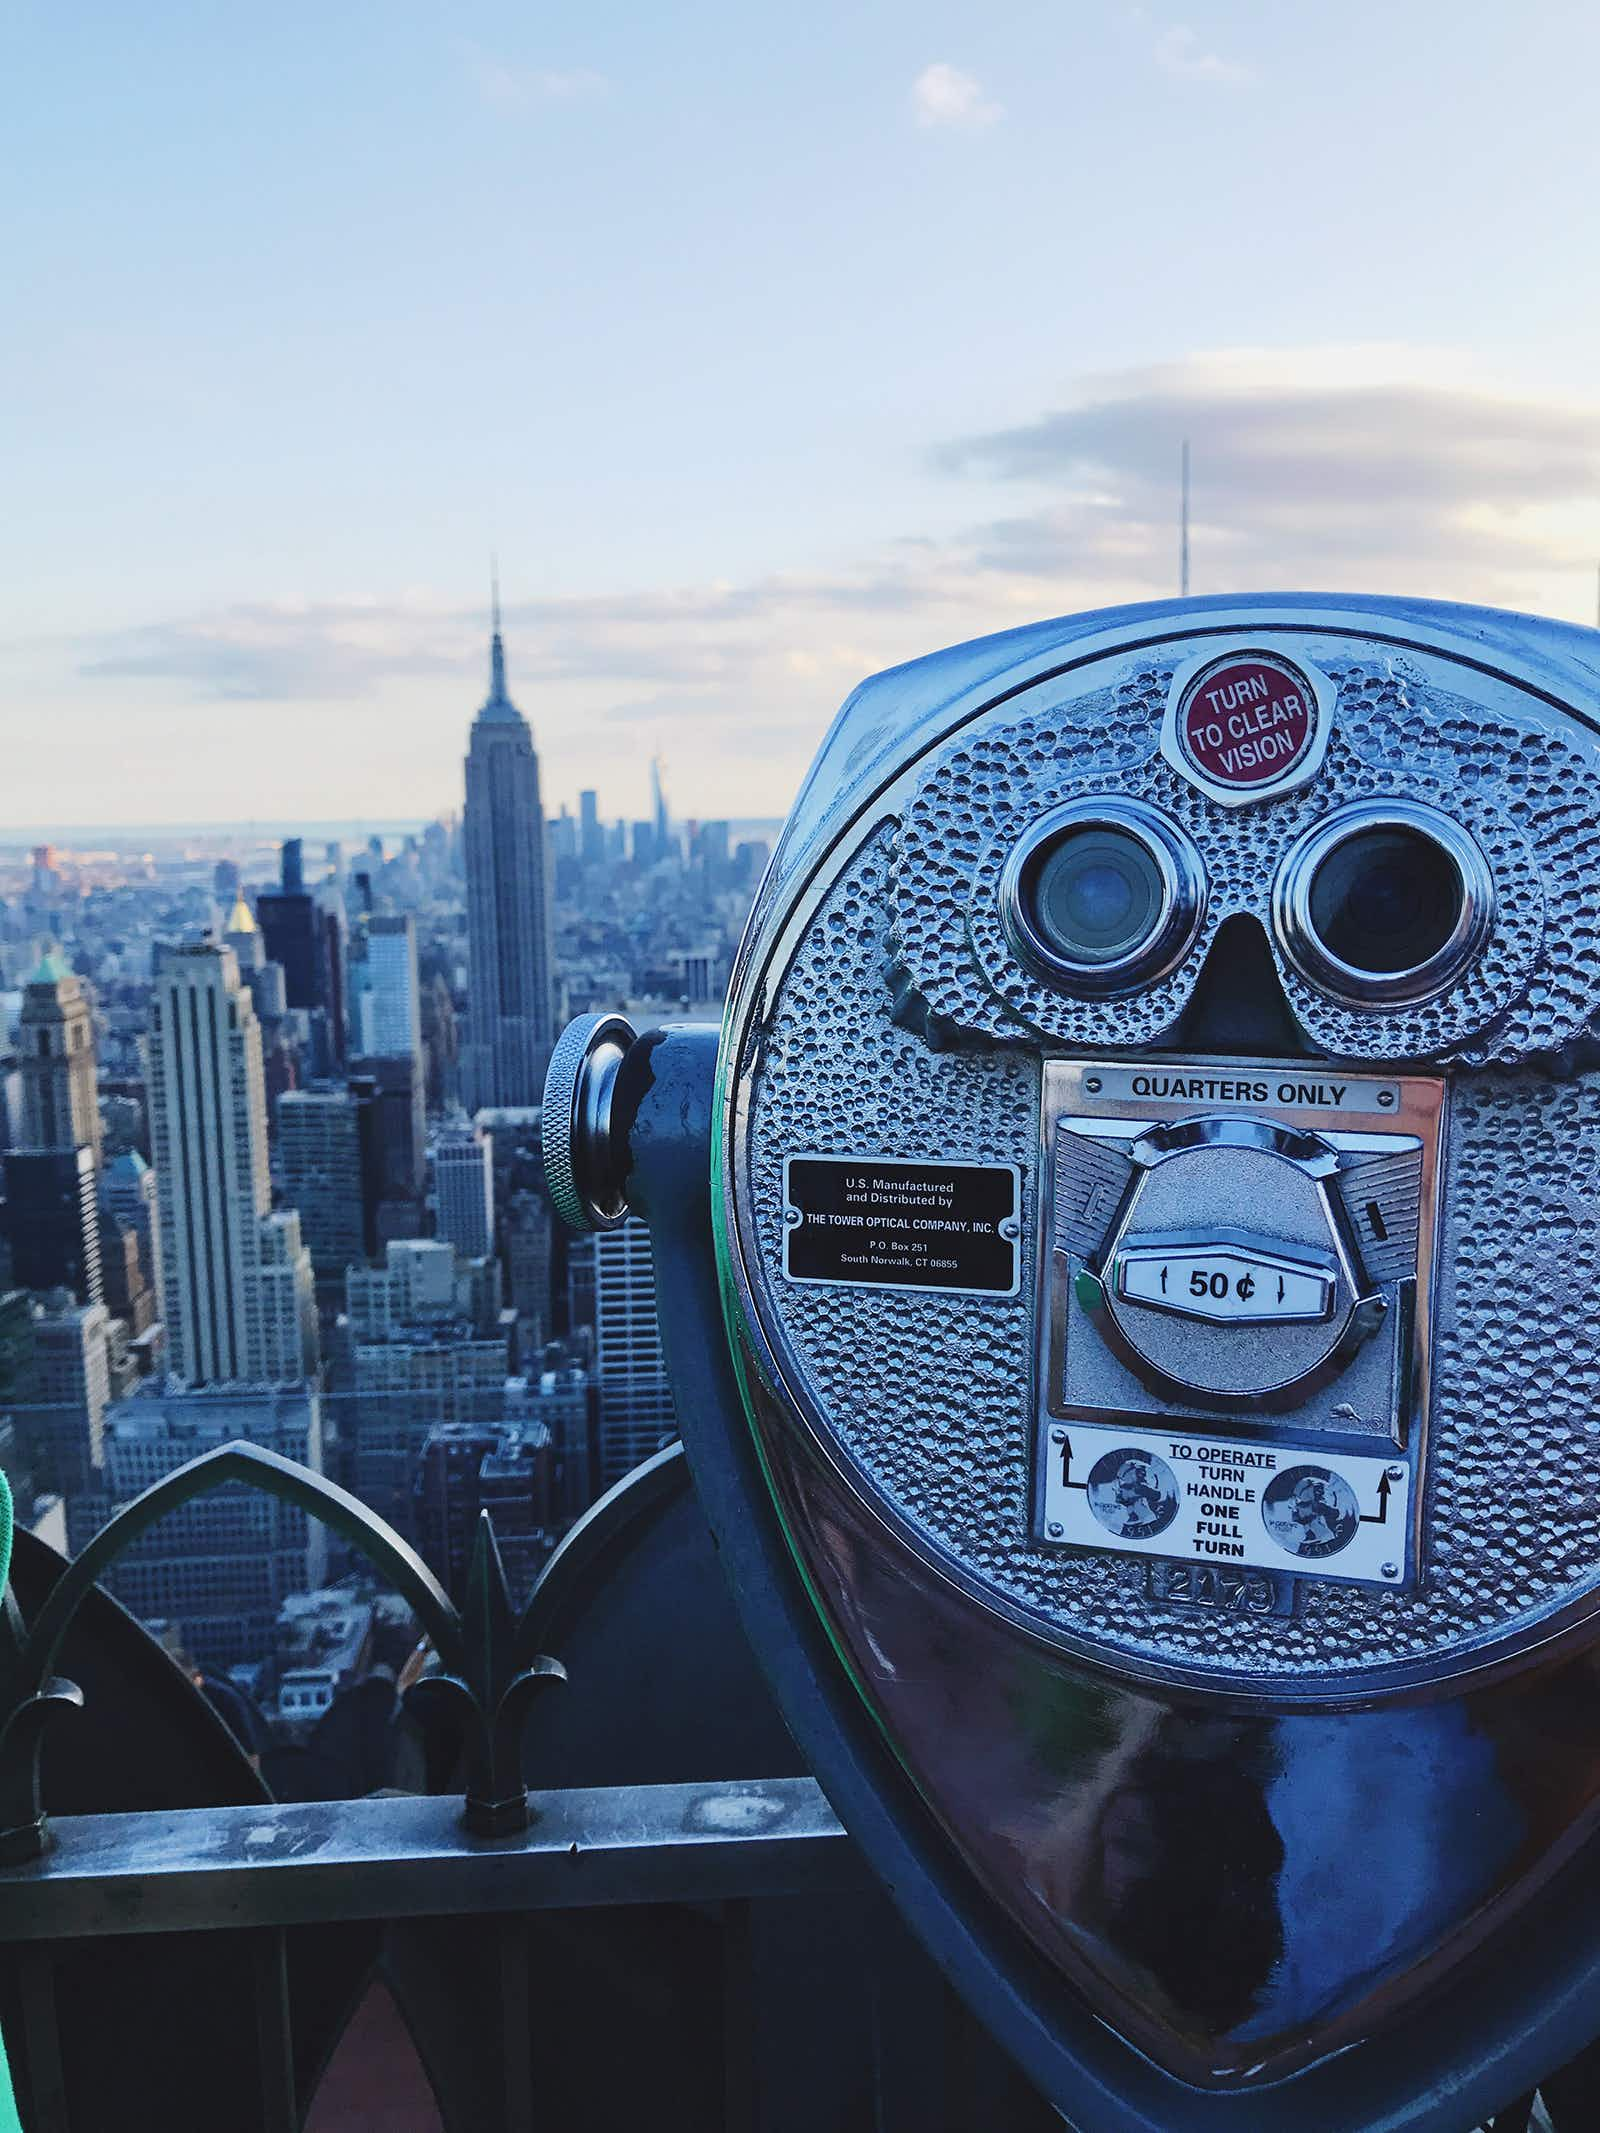 10 iconic NYC Instagram spots (and how to get the best shot)